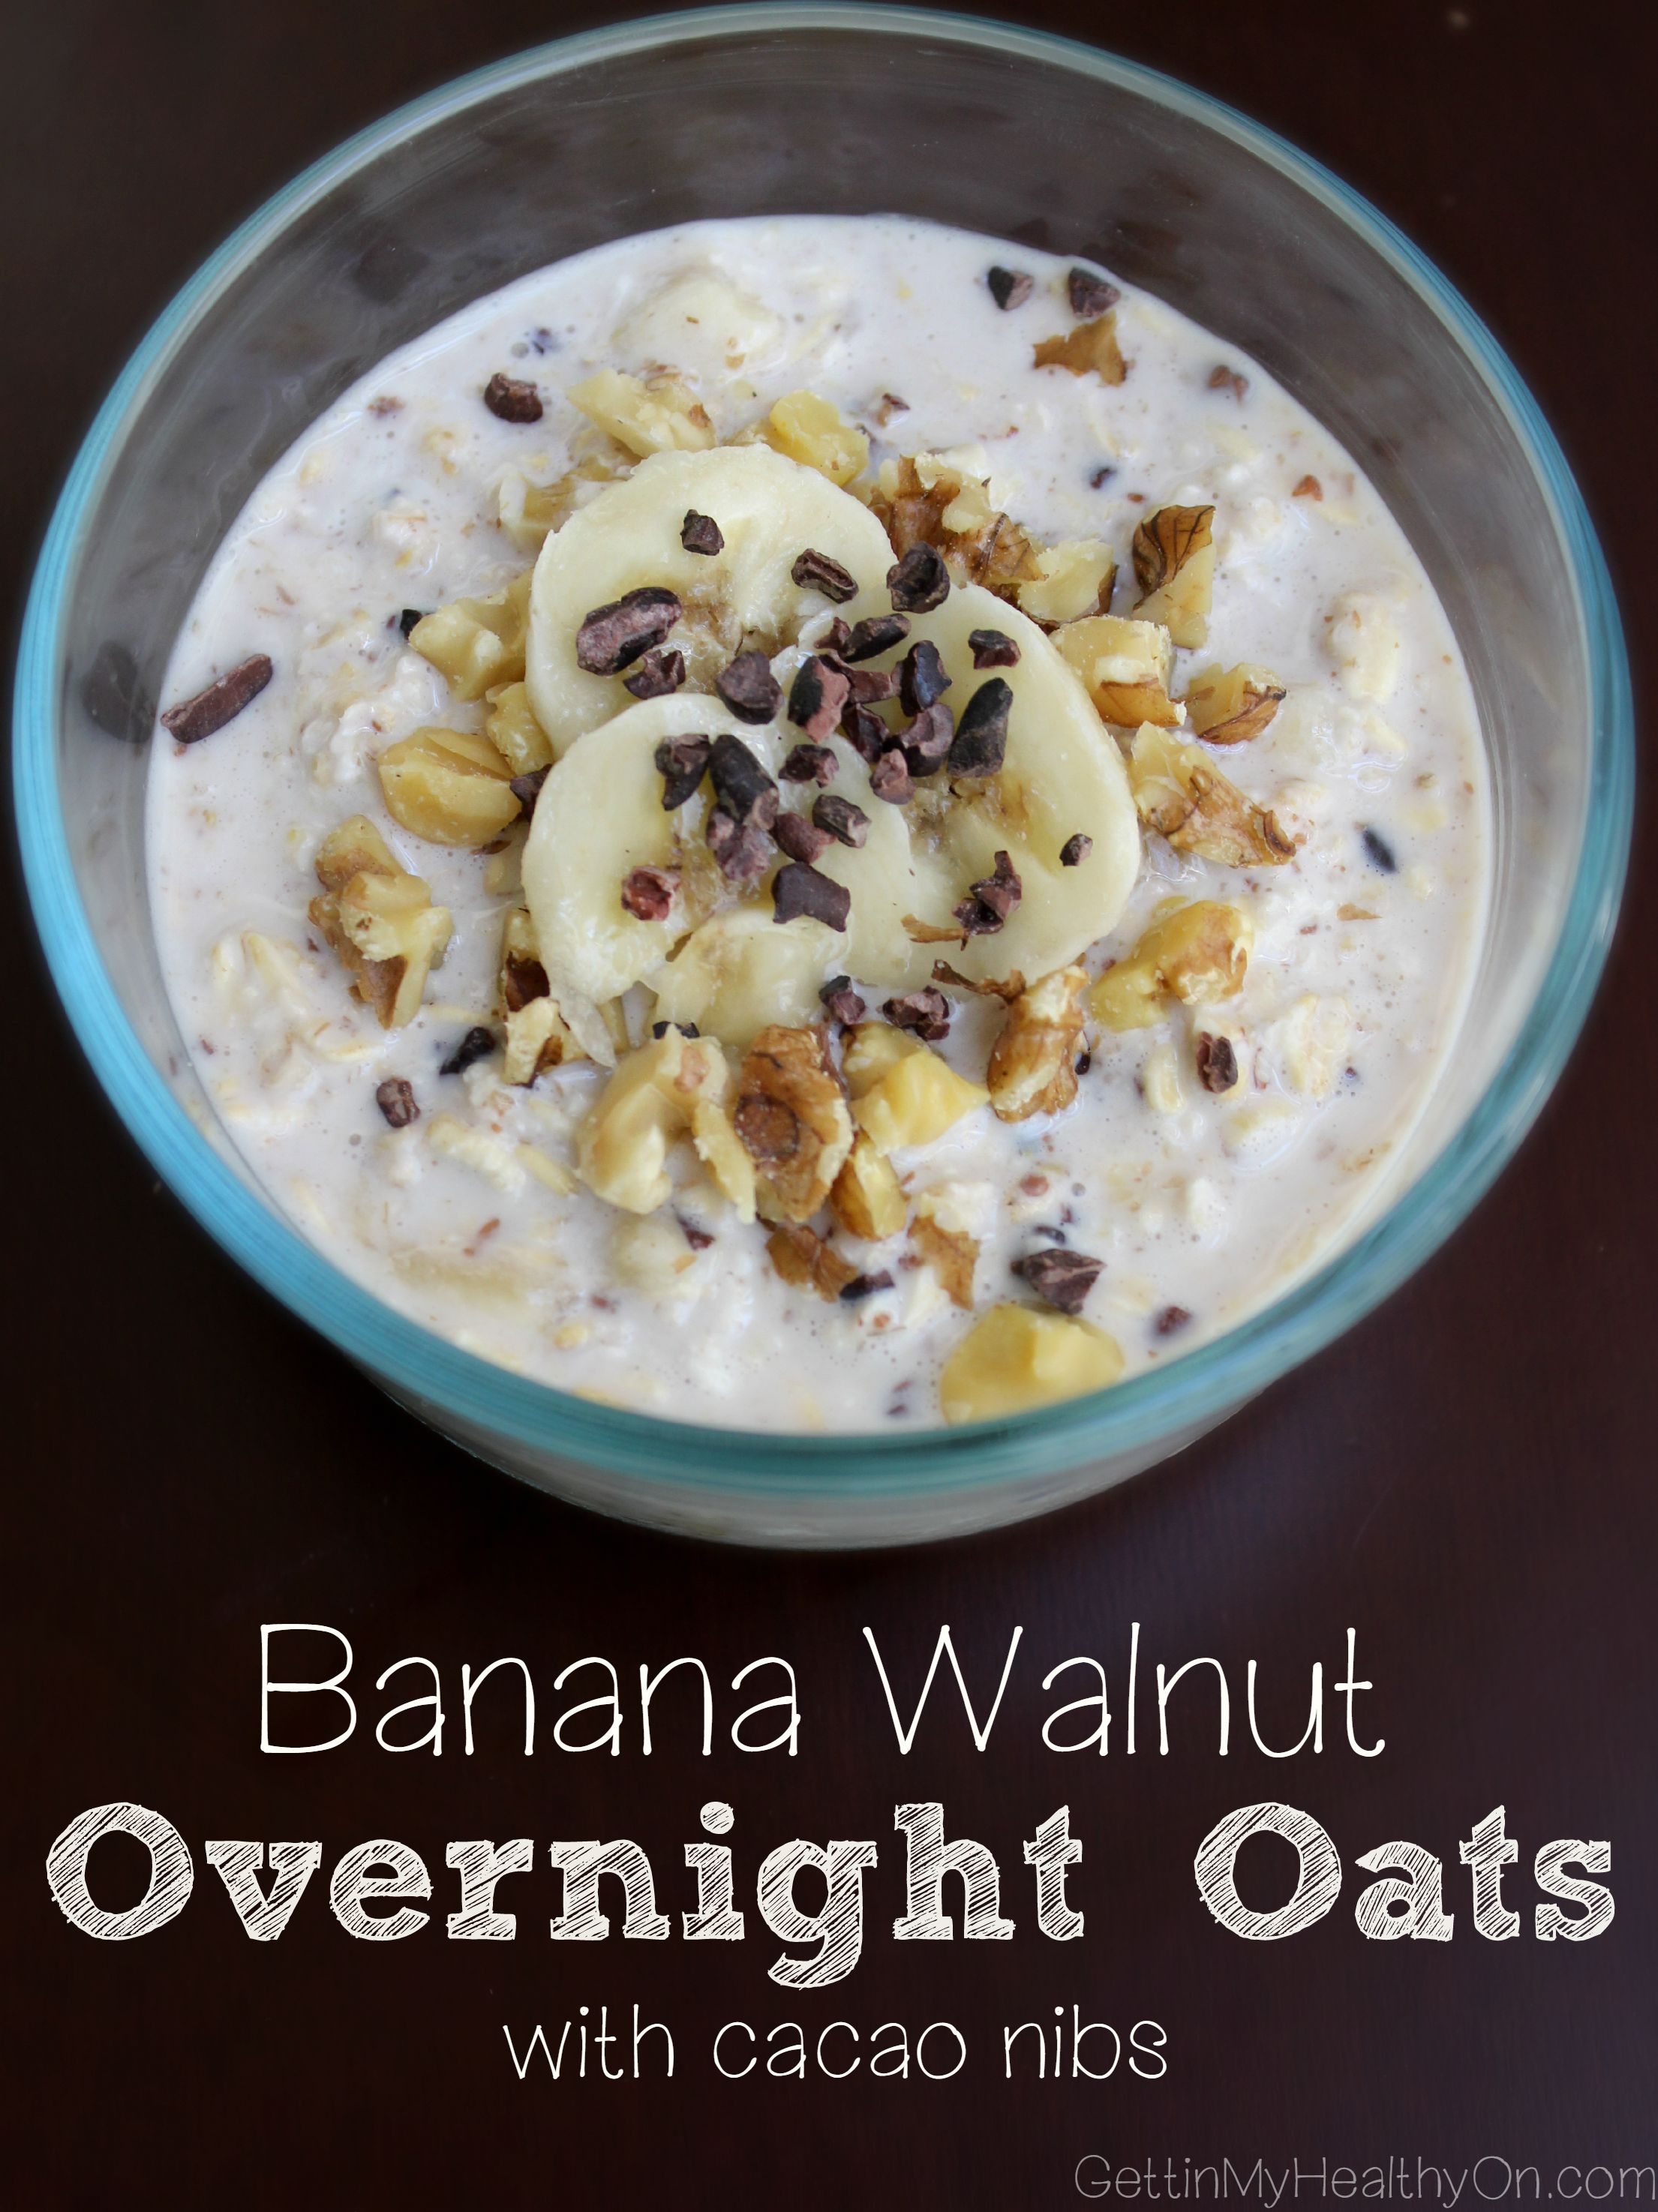 Banana Walnut Overnight Oats with Cacao Nibs